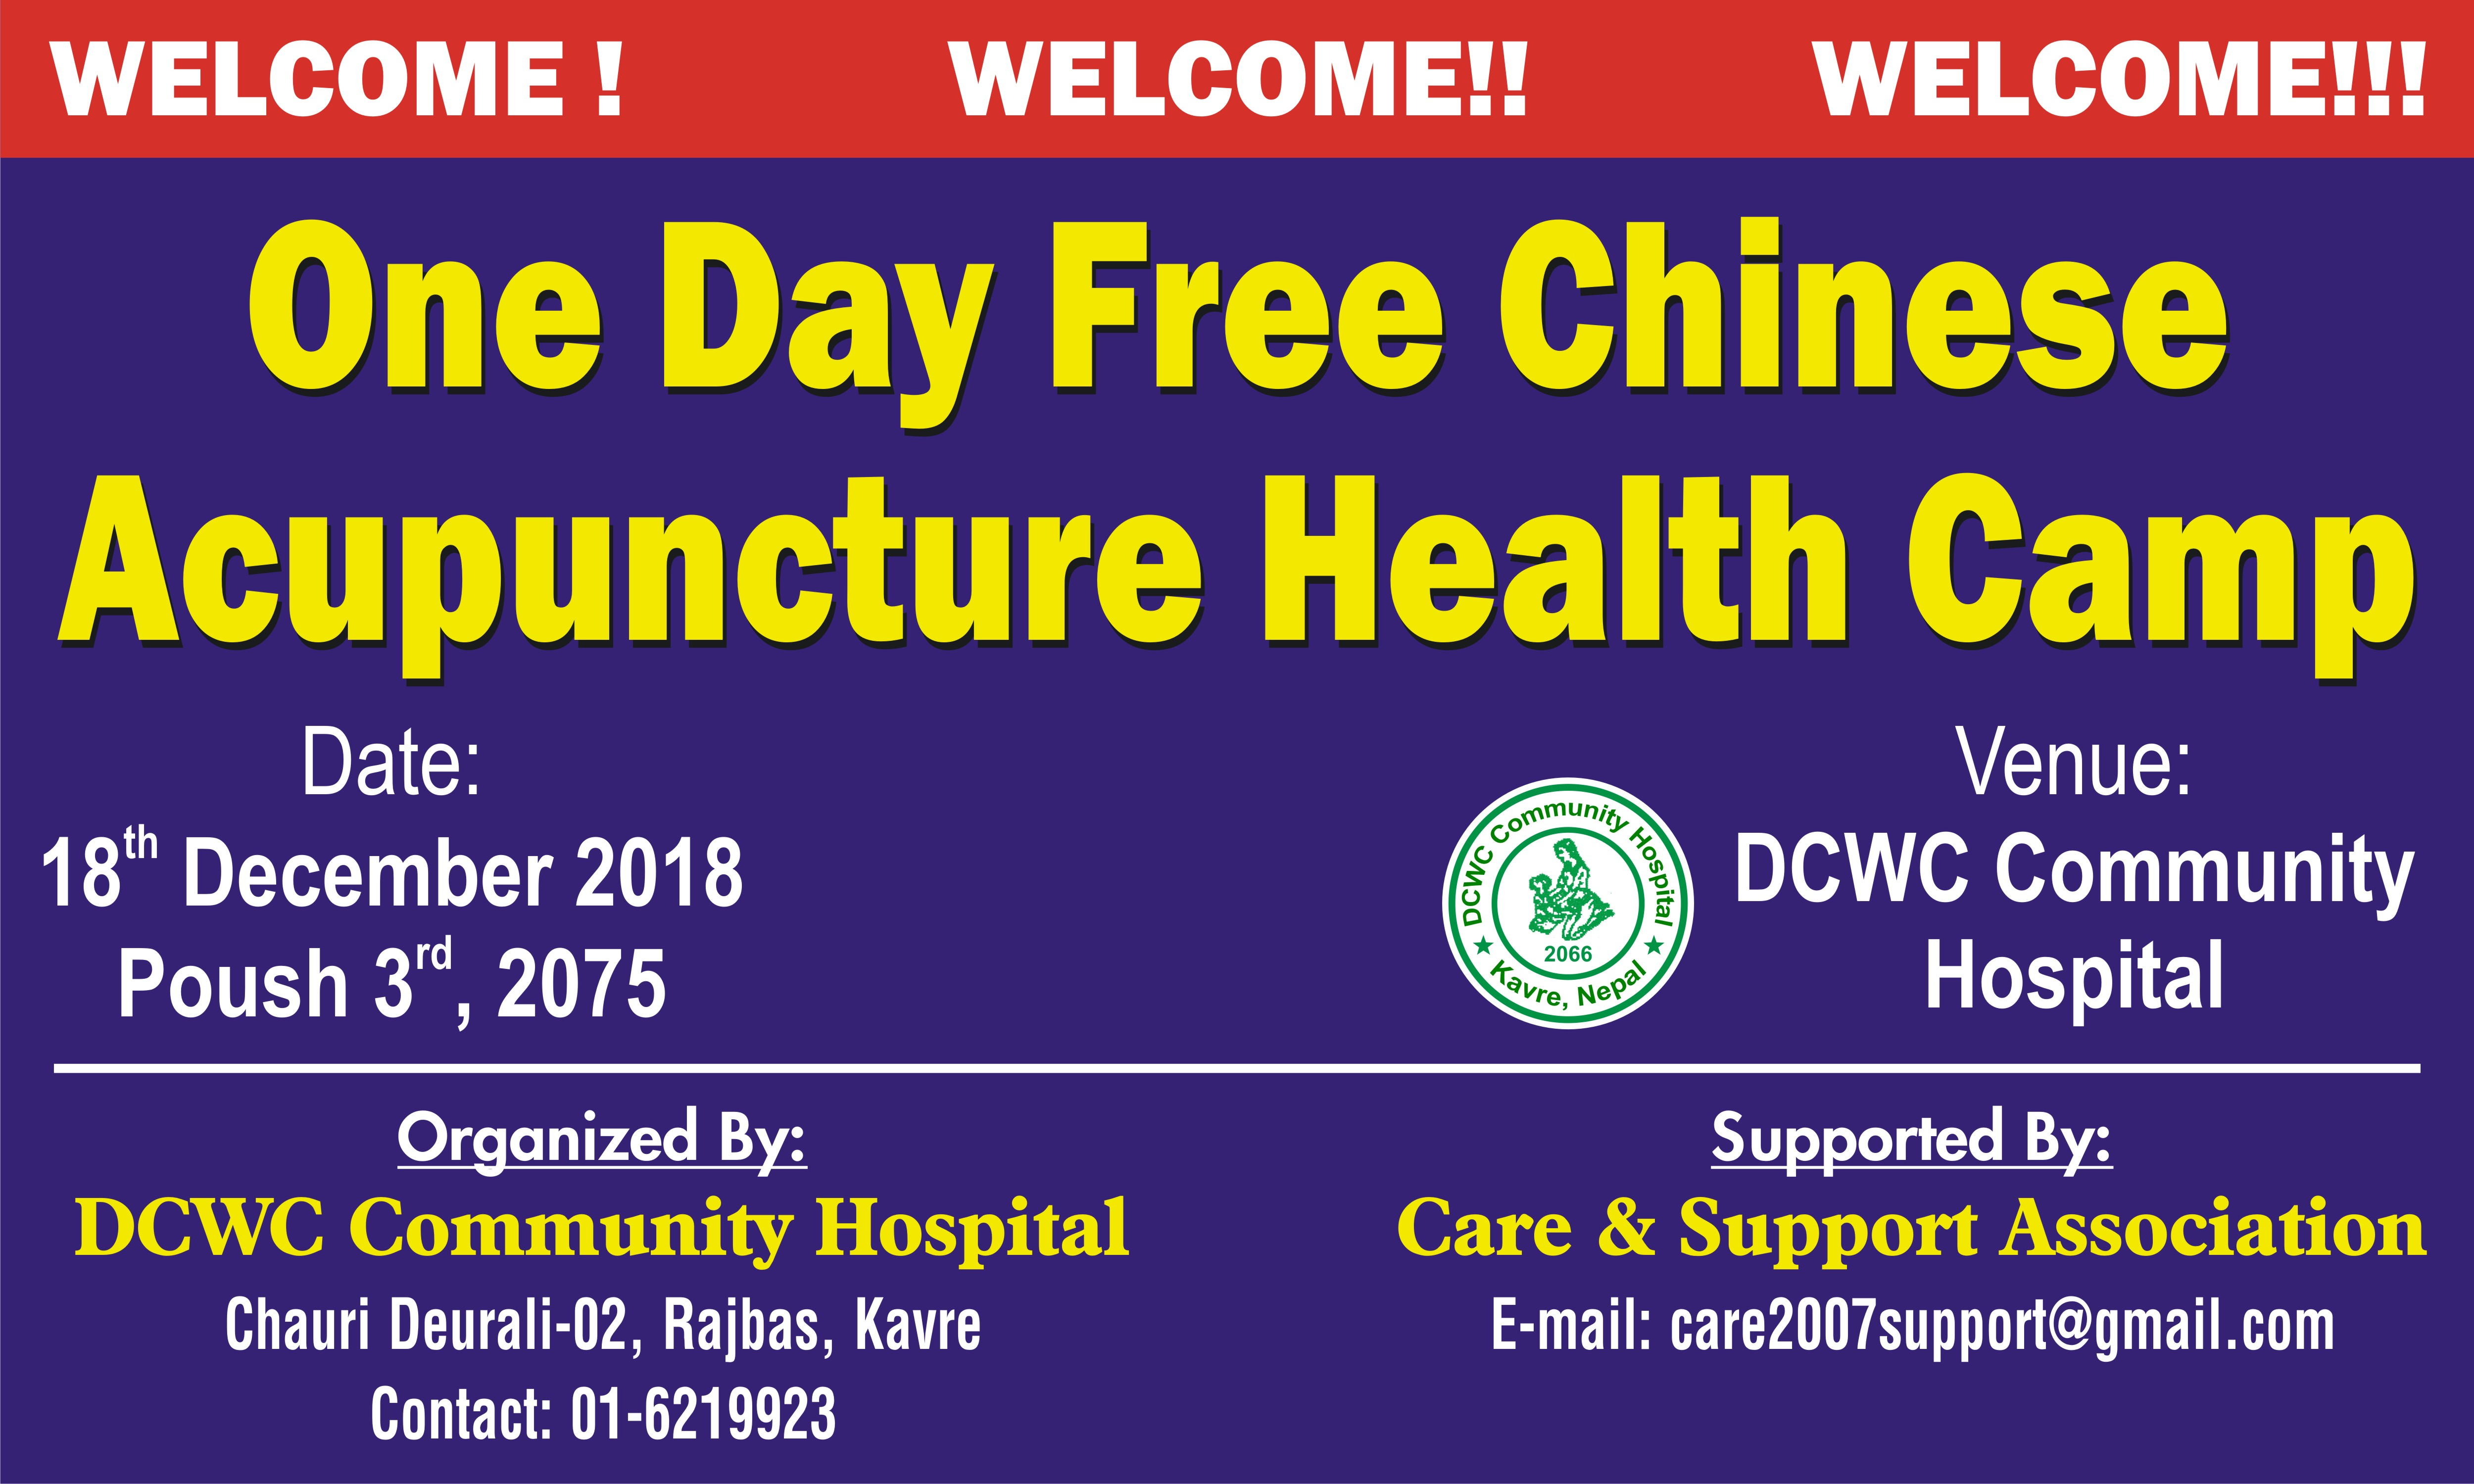 One Day Free Chinese Acupuncture Health Camp